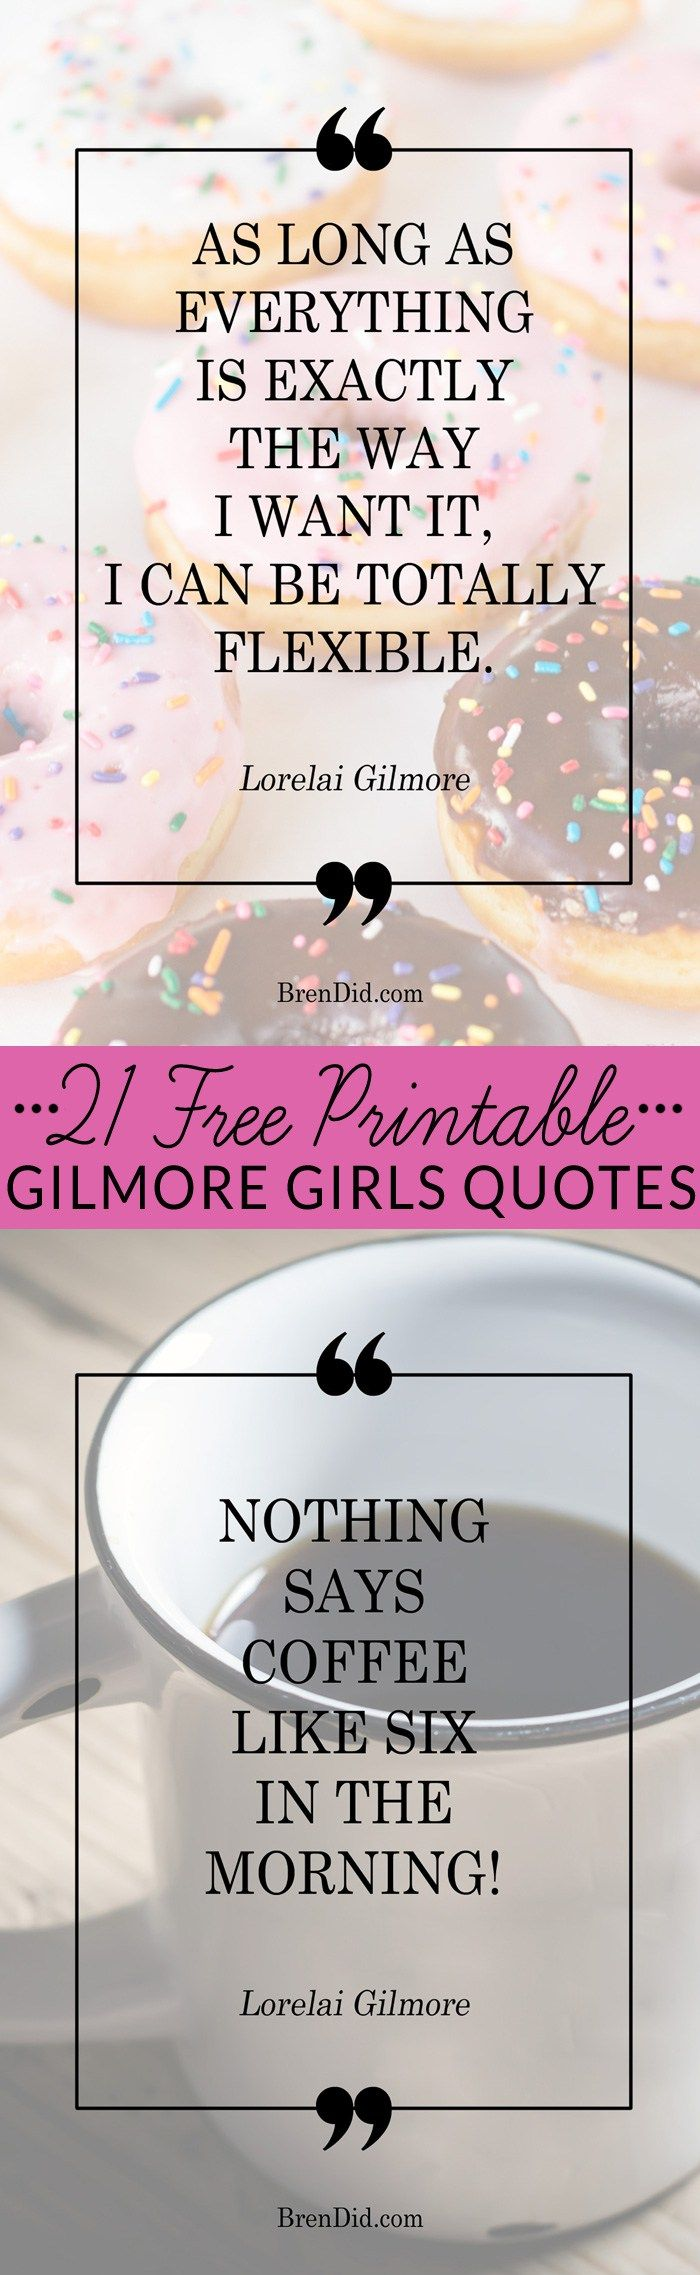 21 Free Printable Gilmore Girls Quotes